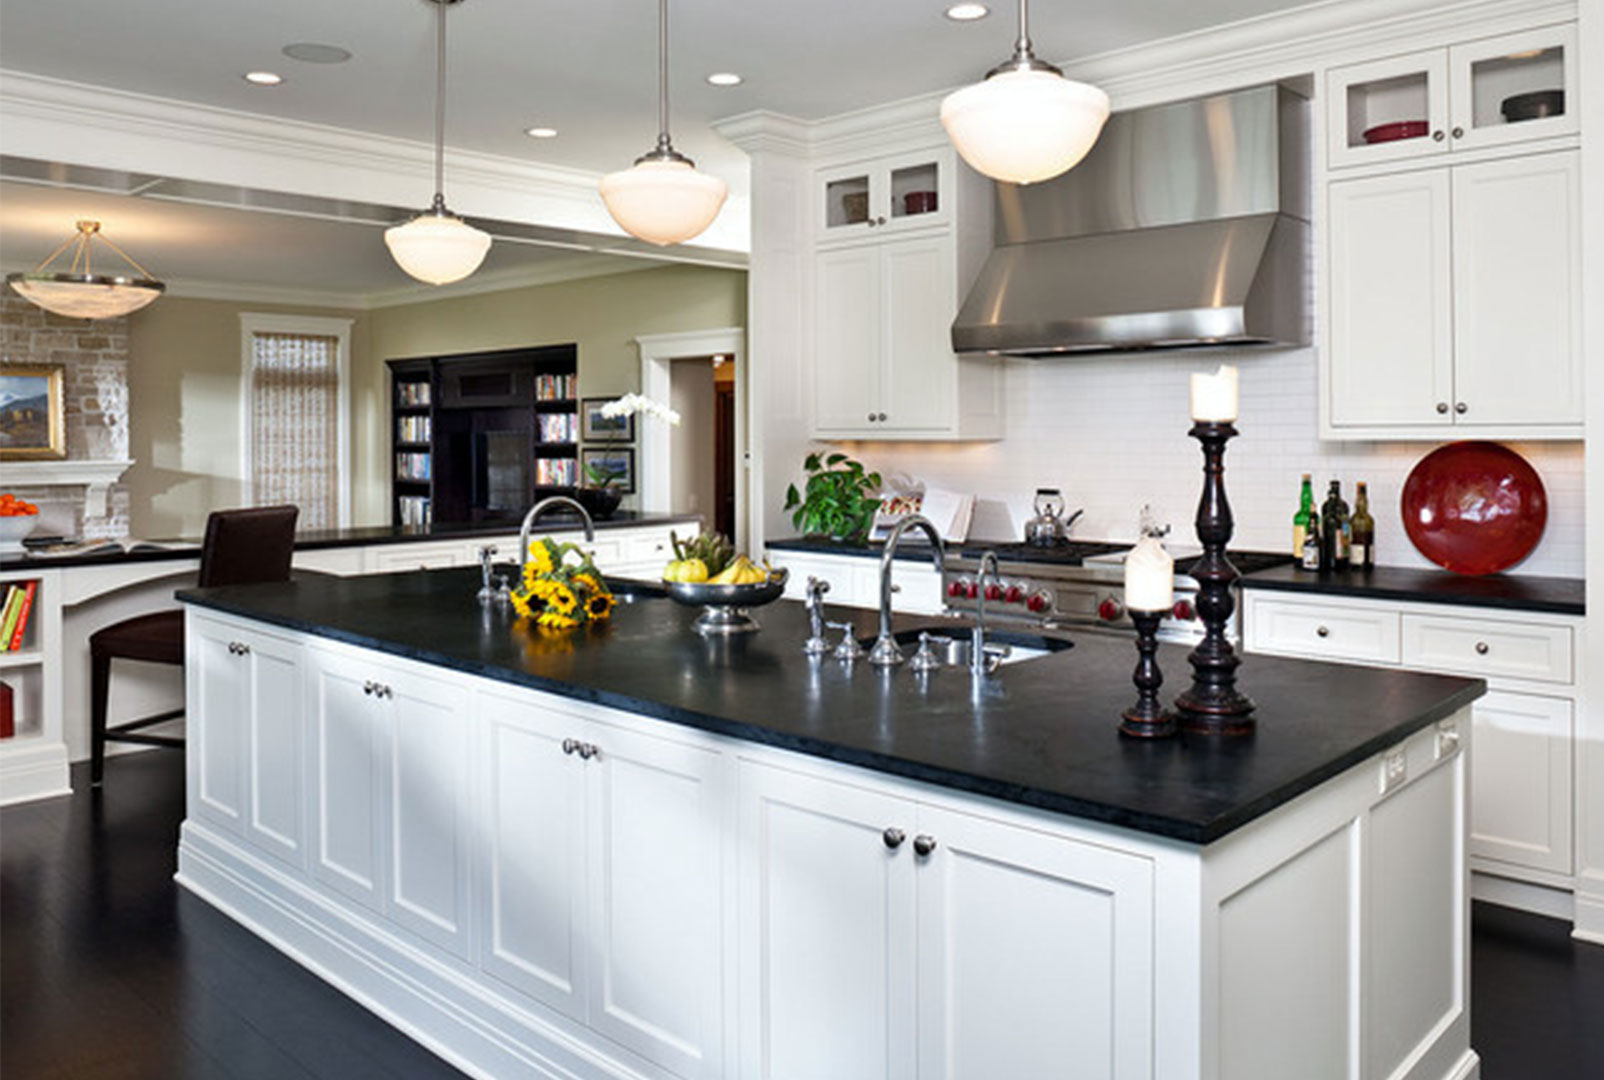 Kitchen Design Idea Photos First Thoughts On Kitchen Remodeling Desis Home Experts